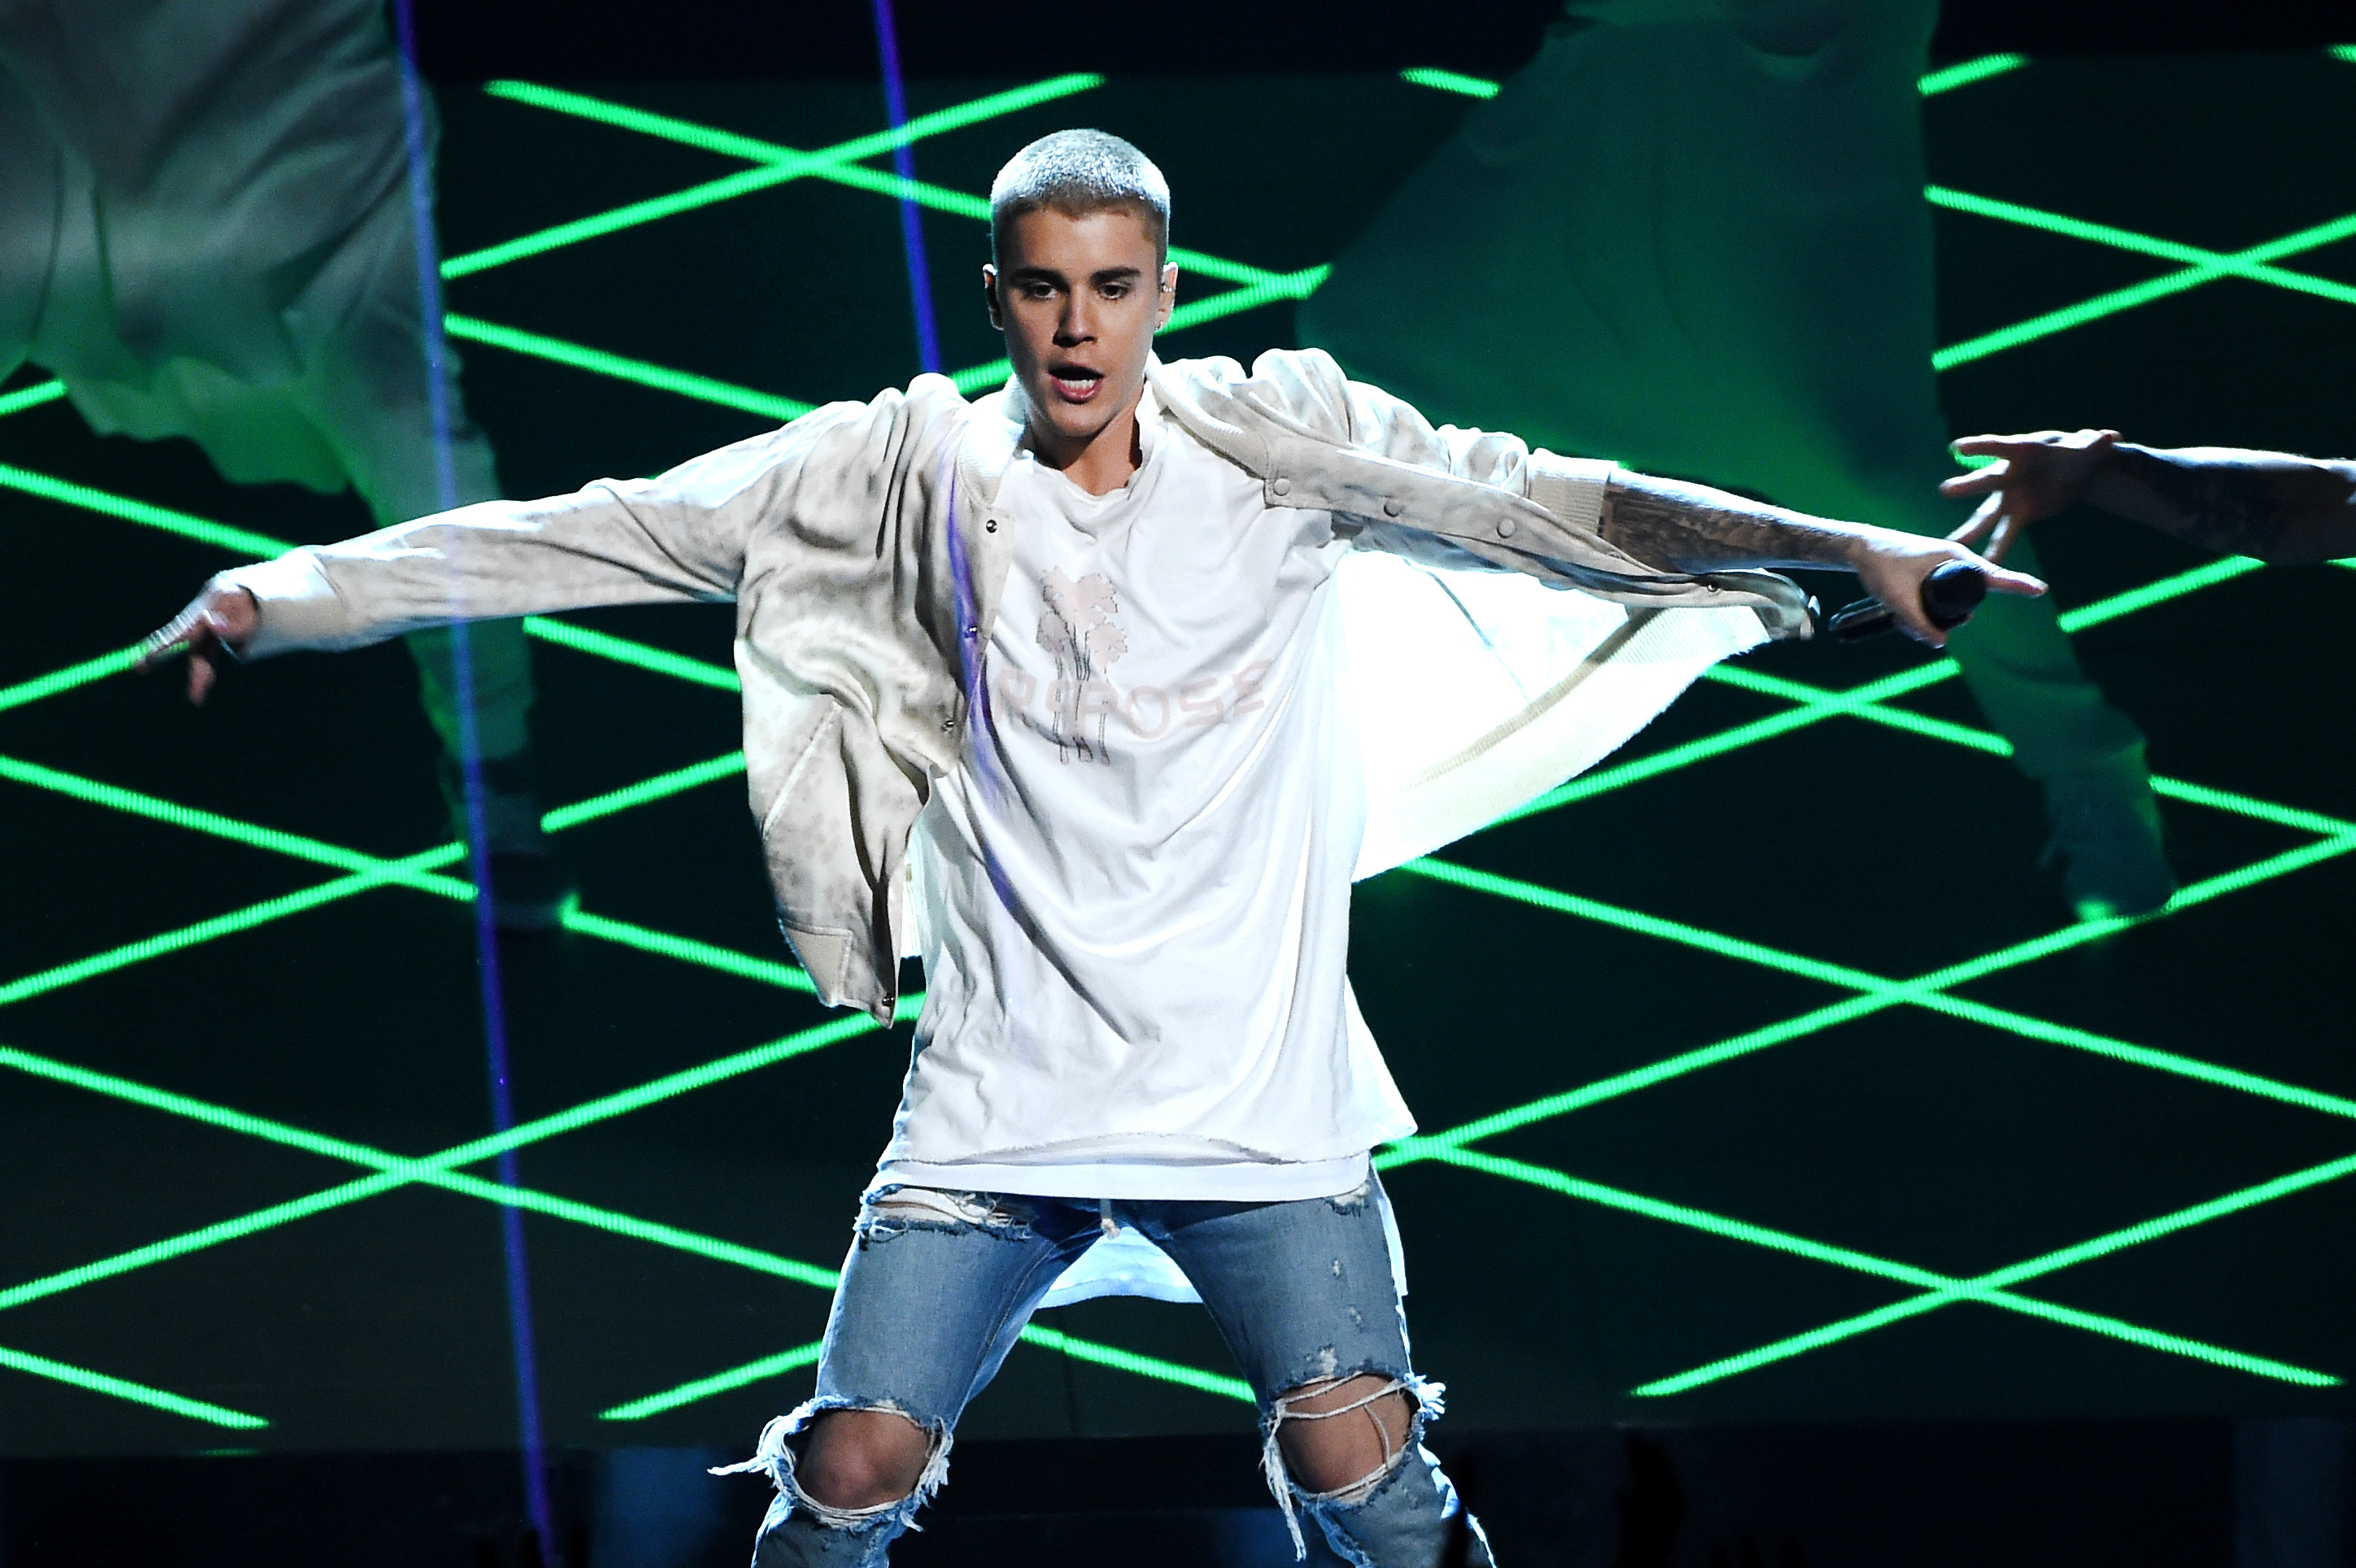 Justin Bieber Billboard Music Awards, Justin Bieber Billboard Performance, Justin Bieber music awards